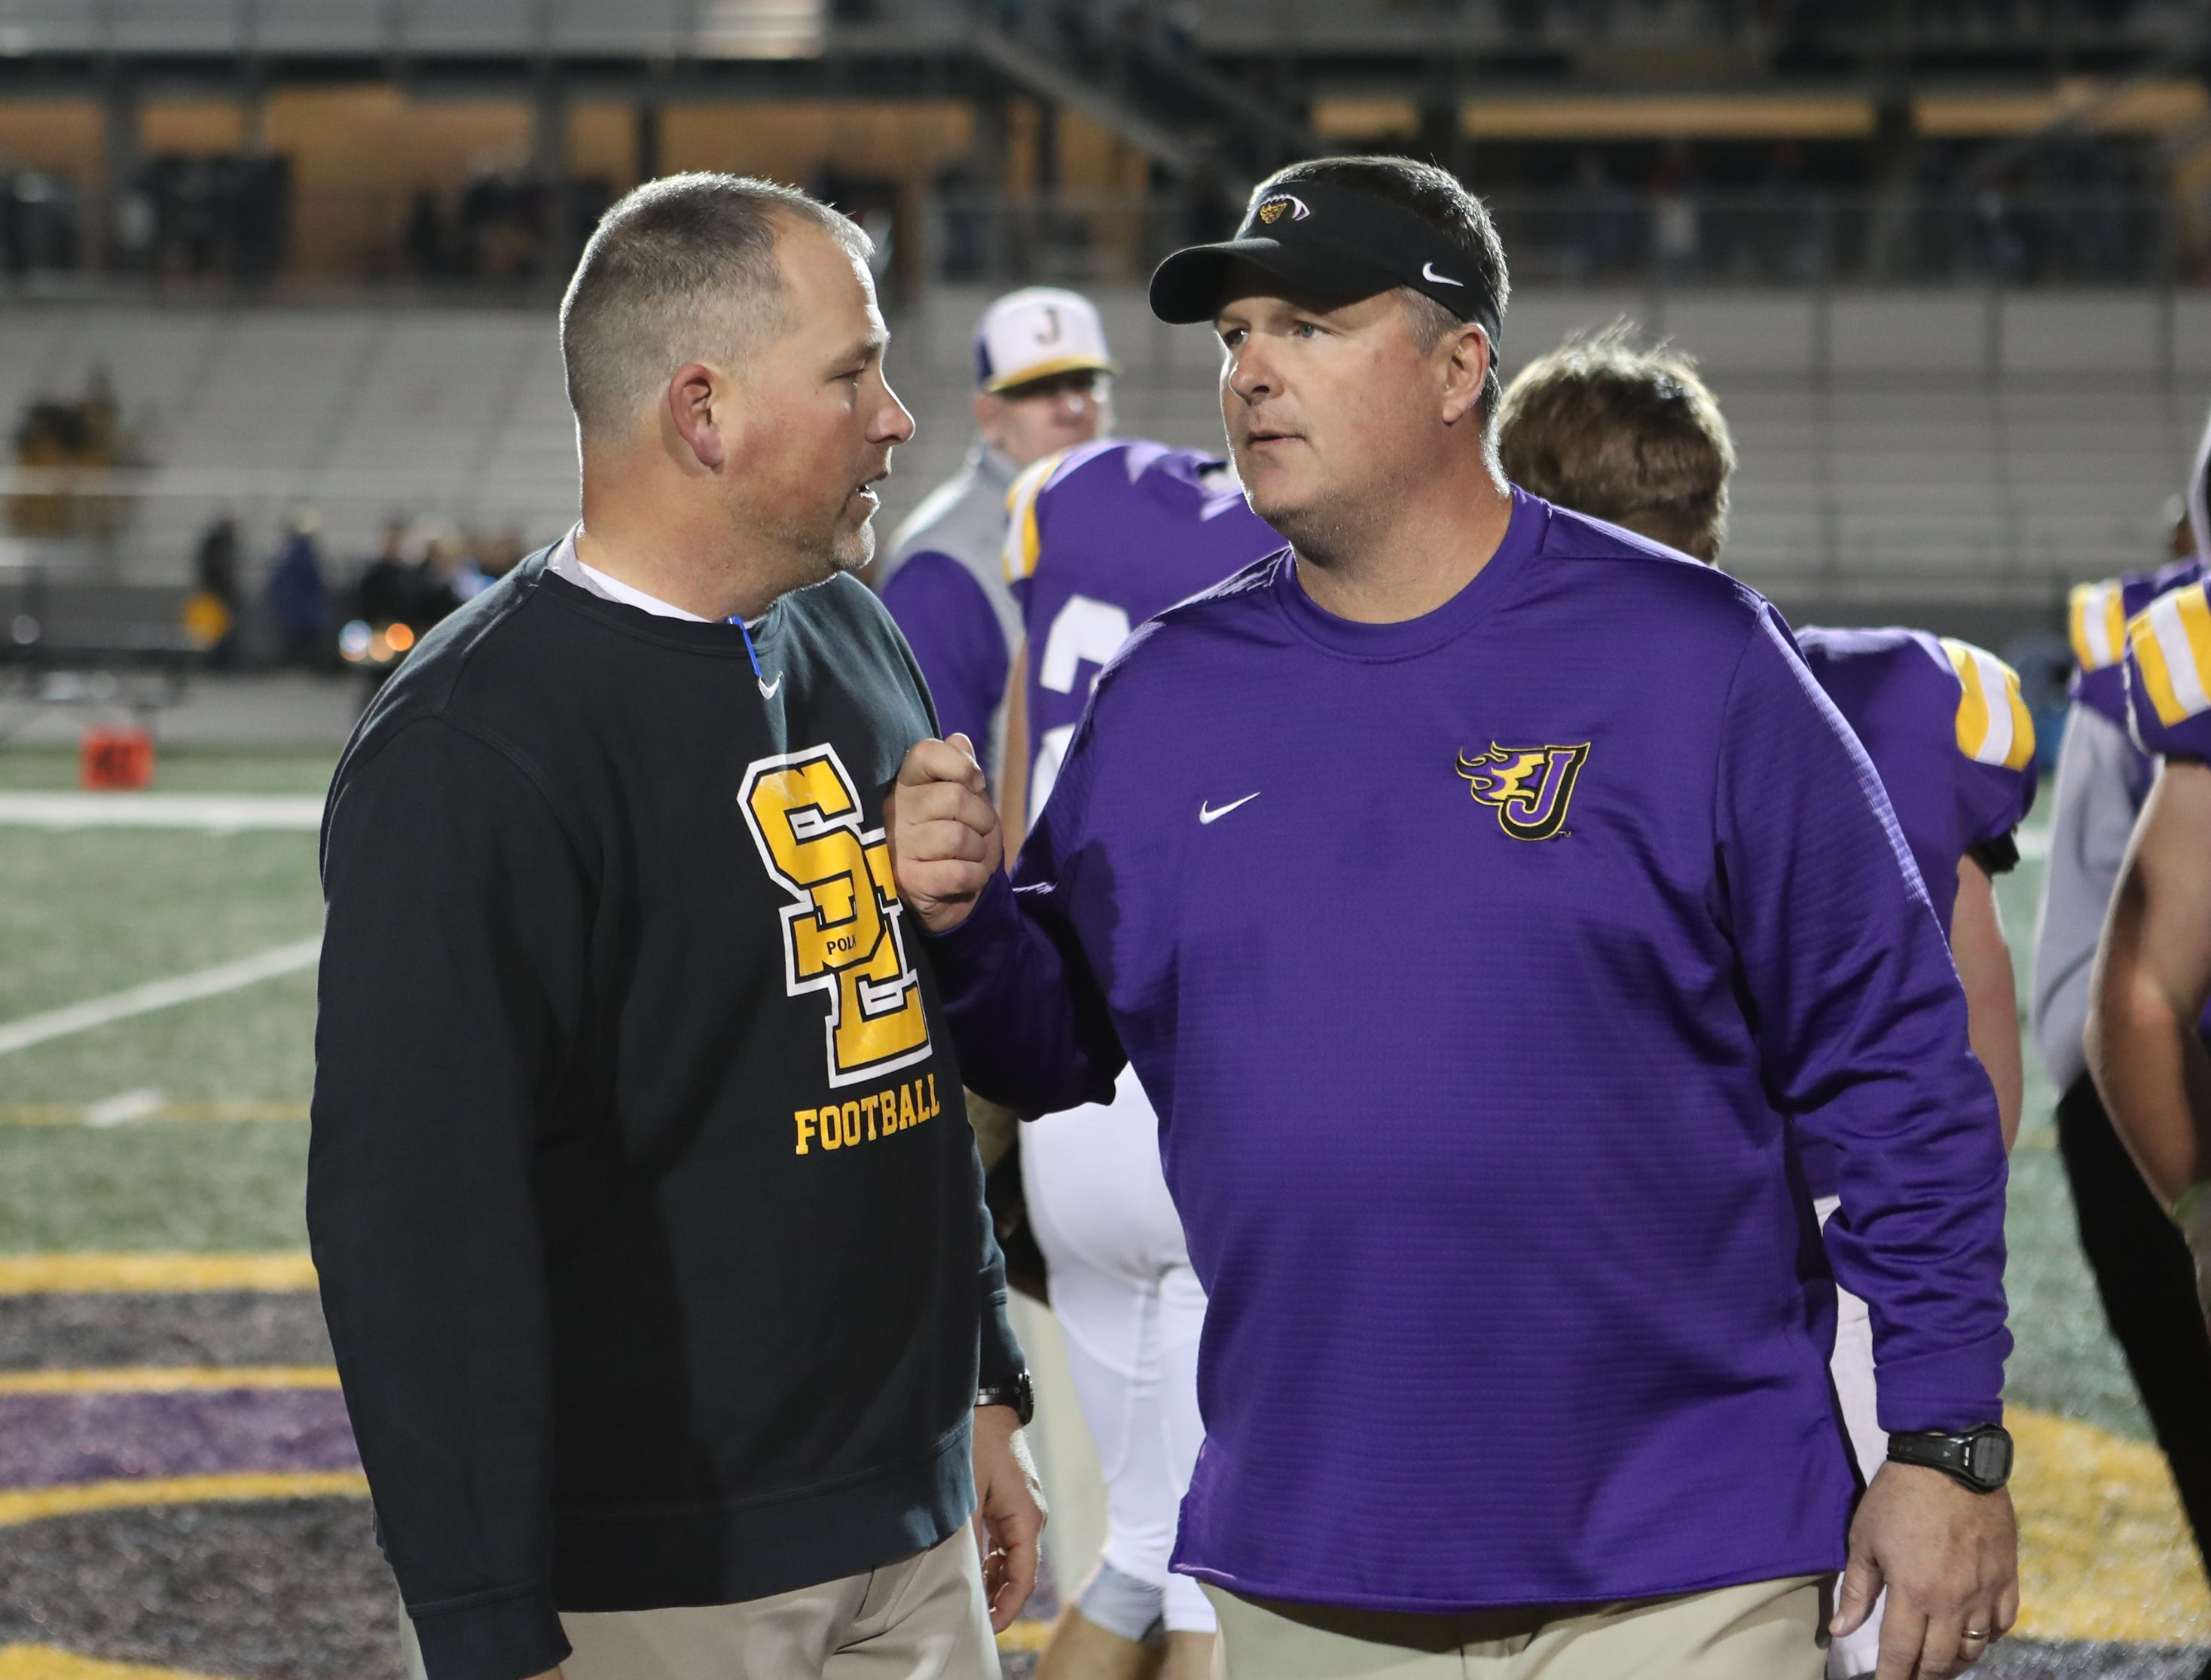 Nov 2, 2018; Johnston, IA, USA; Southeast Polk Rams head coach Brad Zelenovich and Johnston Dragons head coach Brian Woodley visit after the game at Johnston Stadium. The Rams beat the Dragons 21-7.